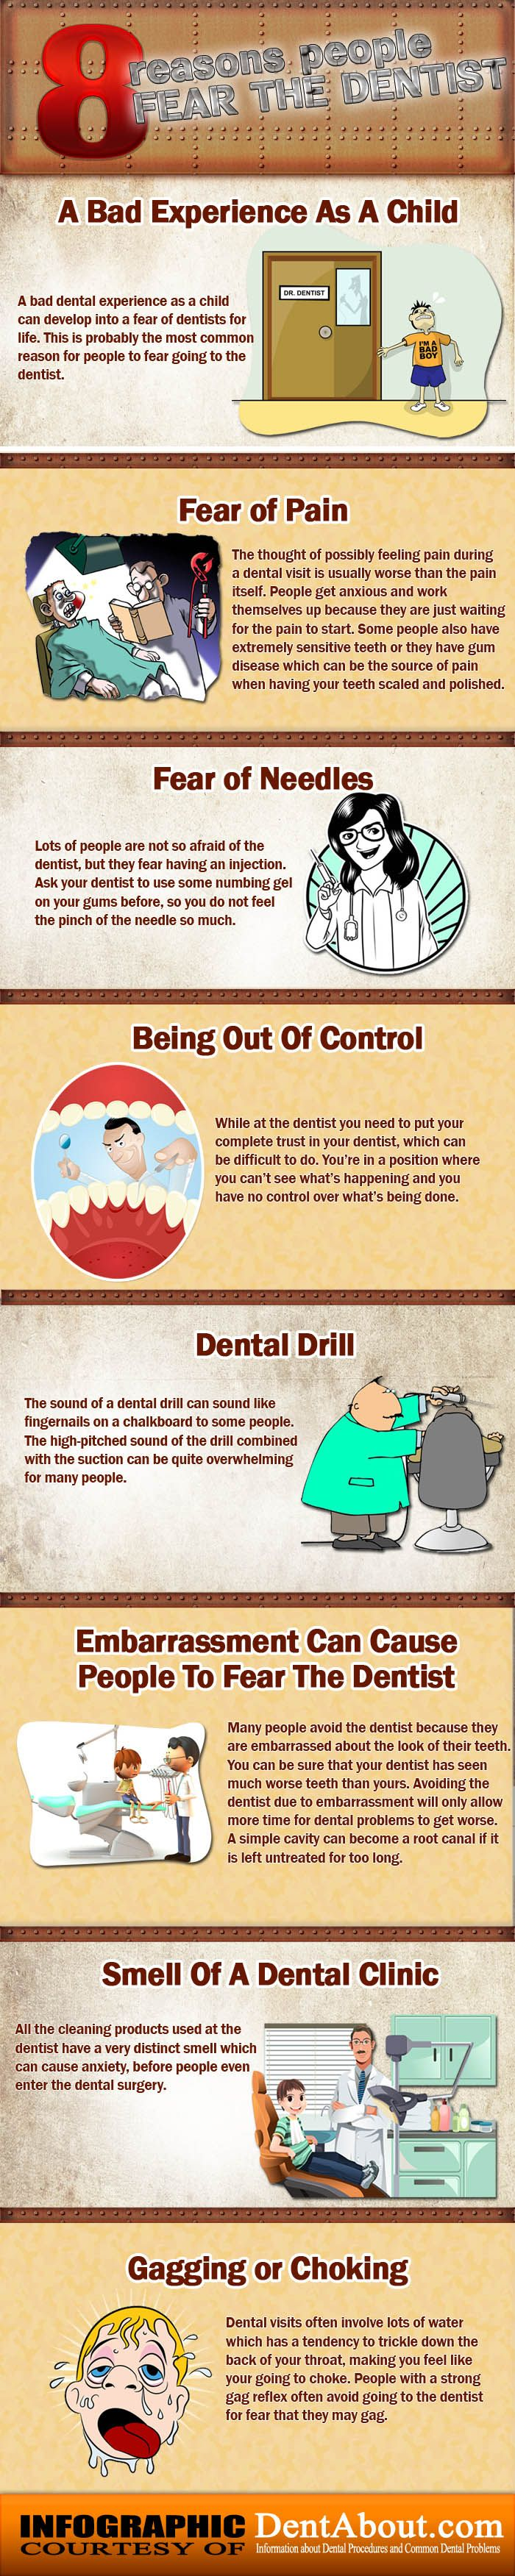 Have a bad experience as a child in the dentist? Fear of needles and dental drills? Here are 8 common reasons why people fear the dentist.